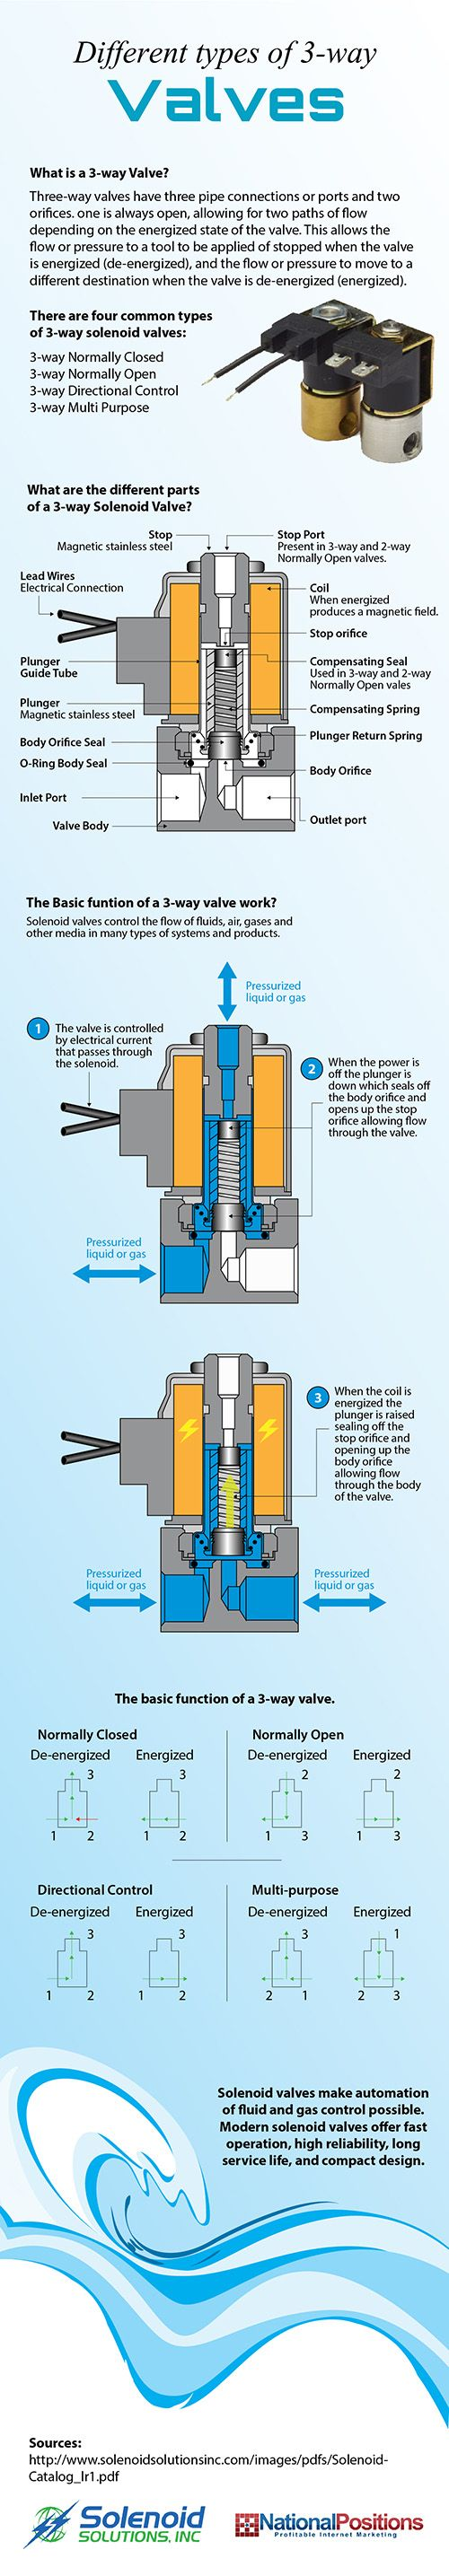 """The following infographic gives you more details on the different types and functions of 3-way valves. Read """"Different Types of 3-Way Valves - Infographic"""""""